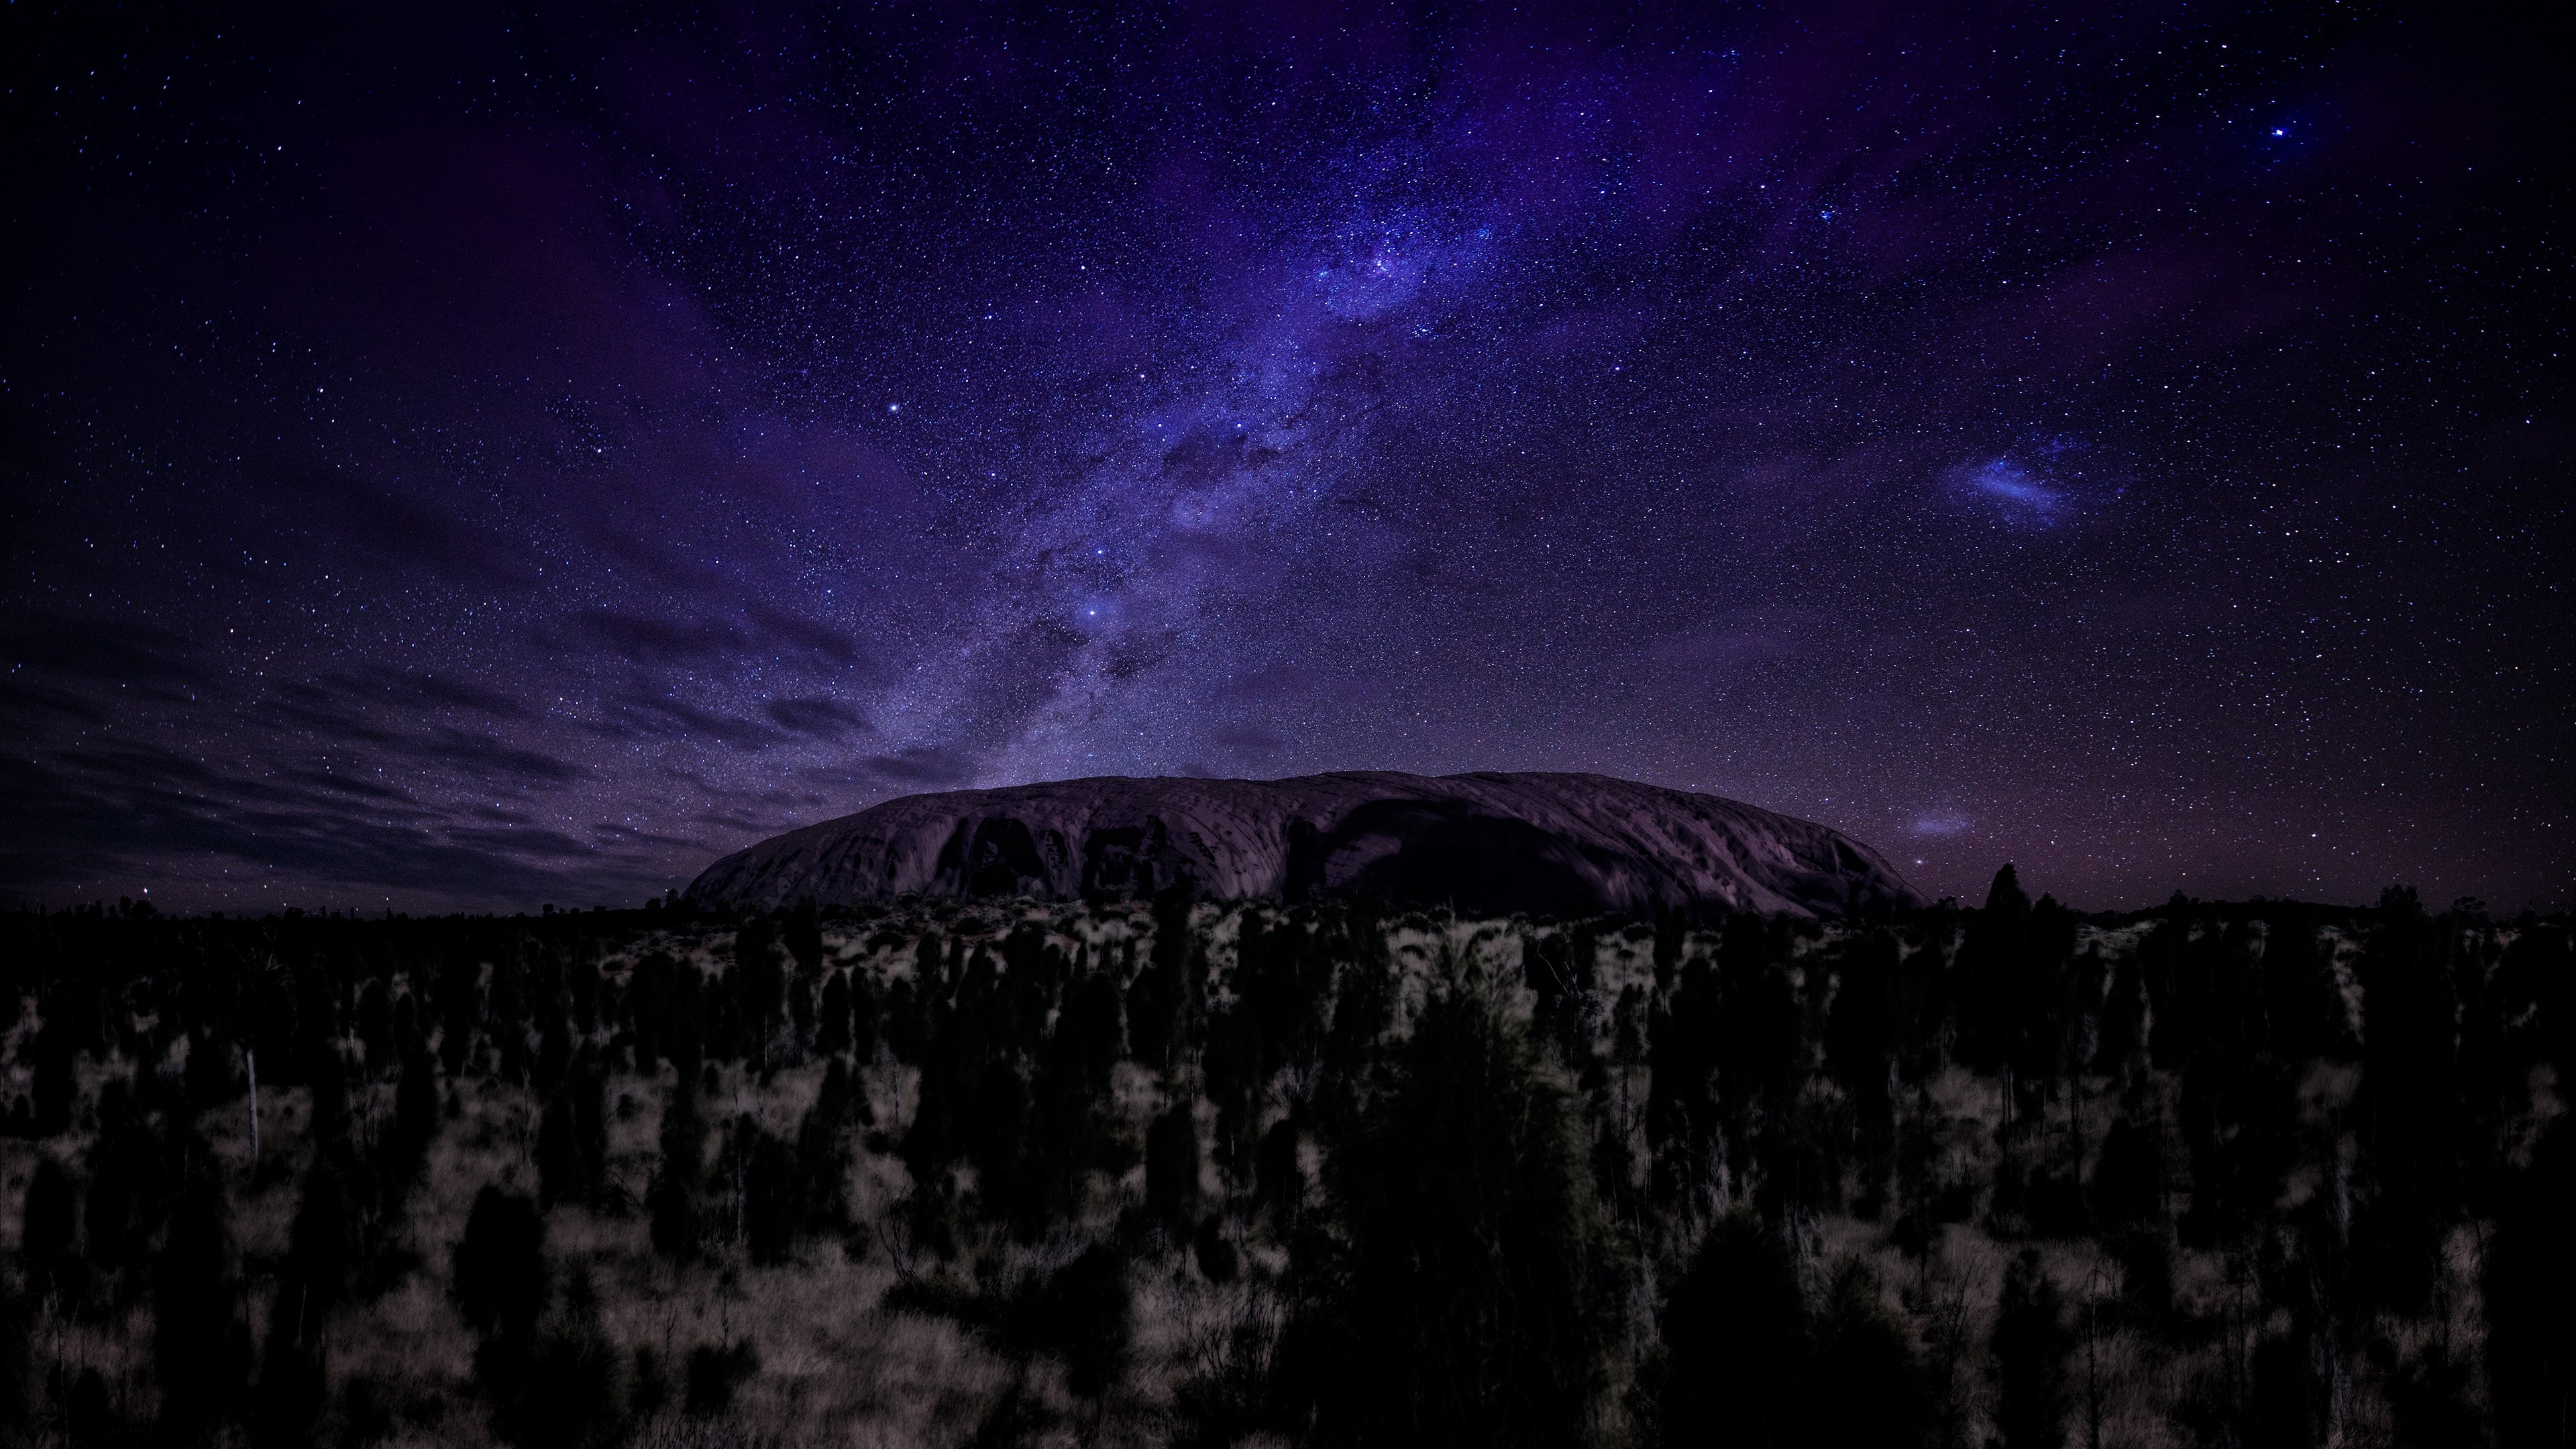 Wallpaper Ayers 5k 4k Wallpaper Mountains Night Stars